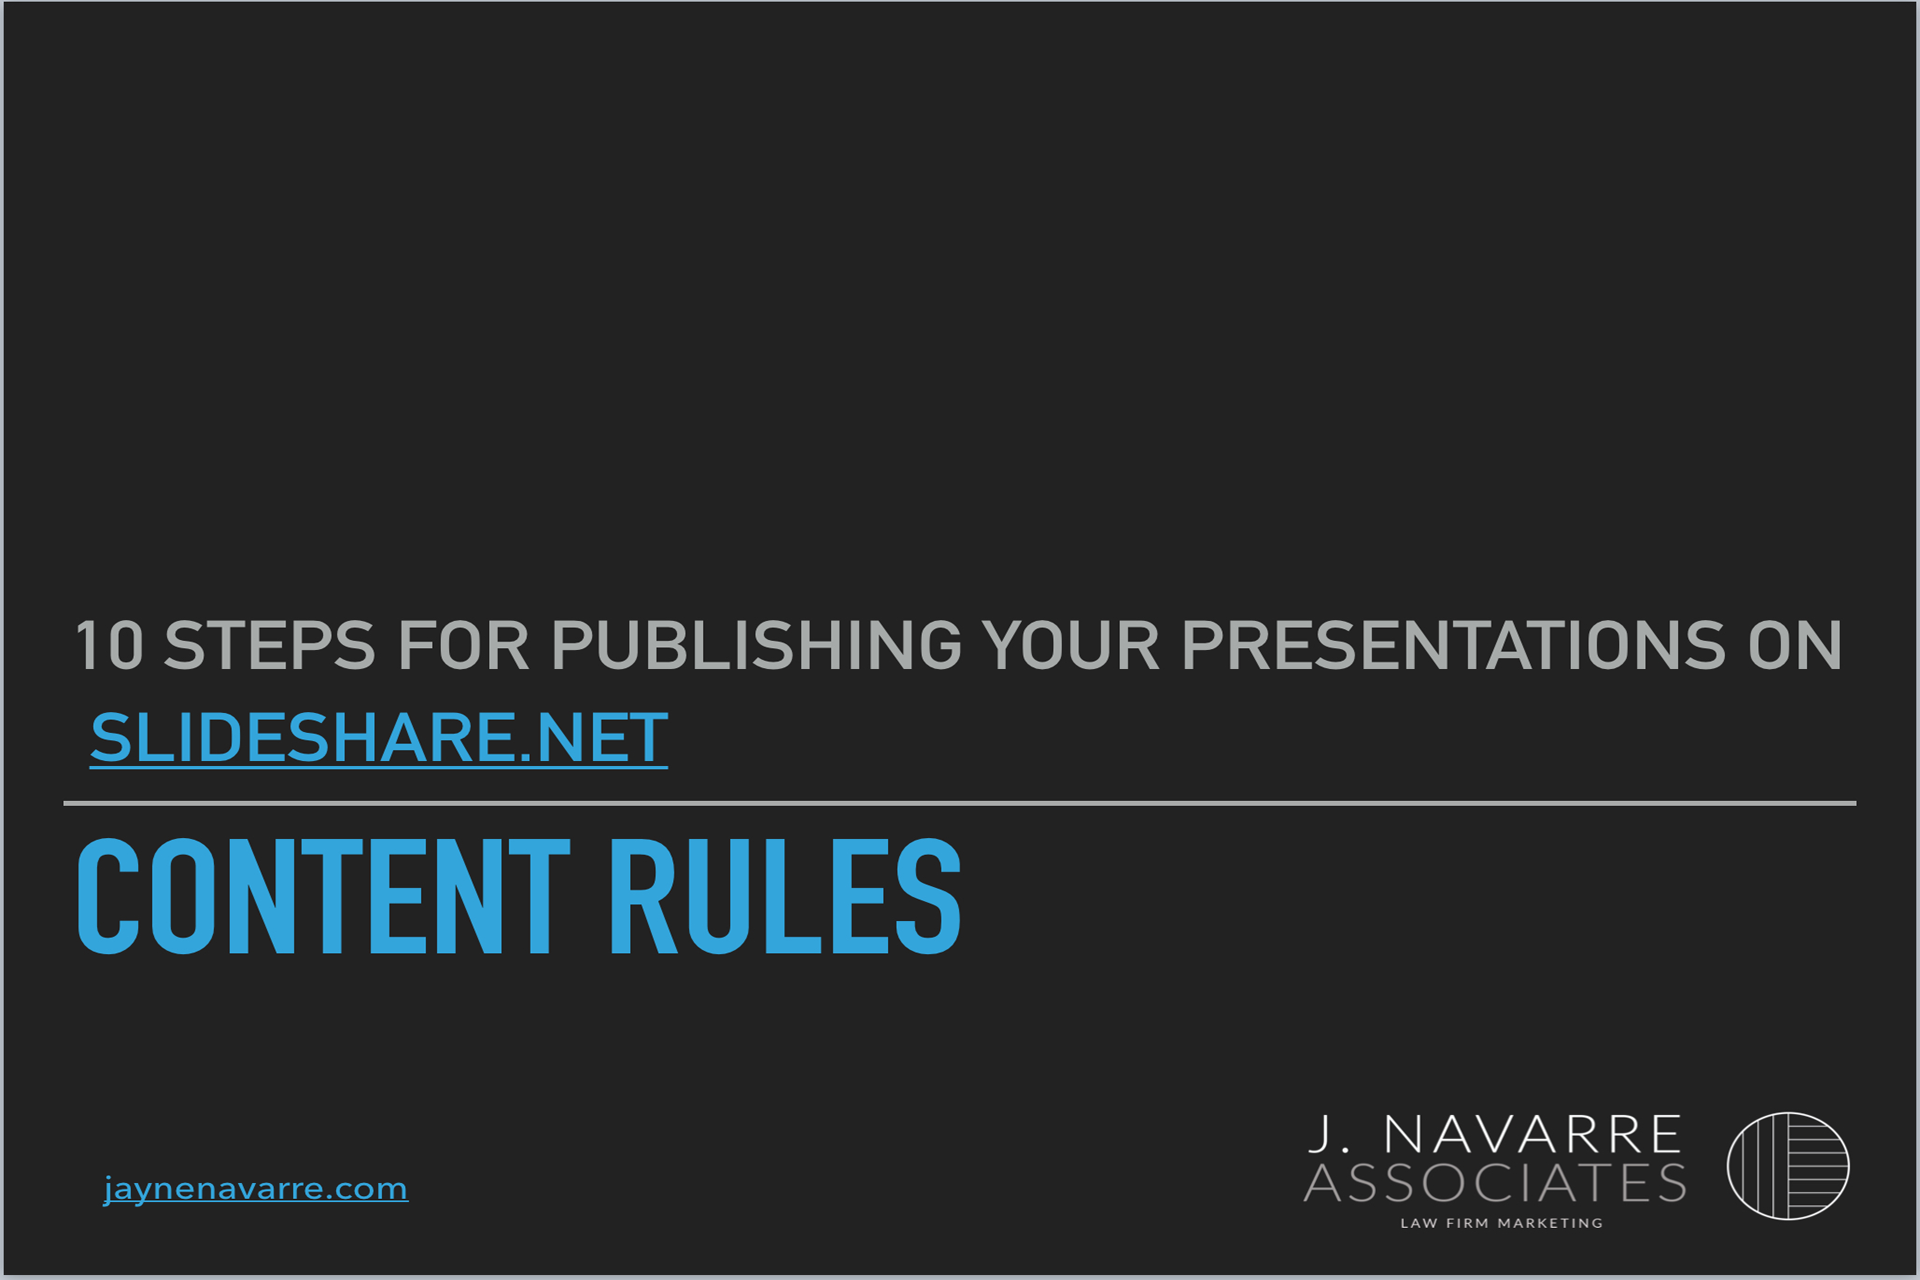 Repurpose your presentation for publishing on SlideShare